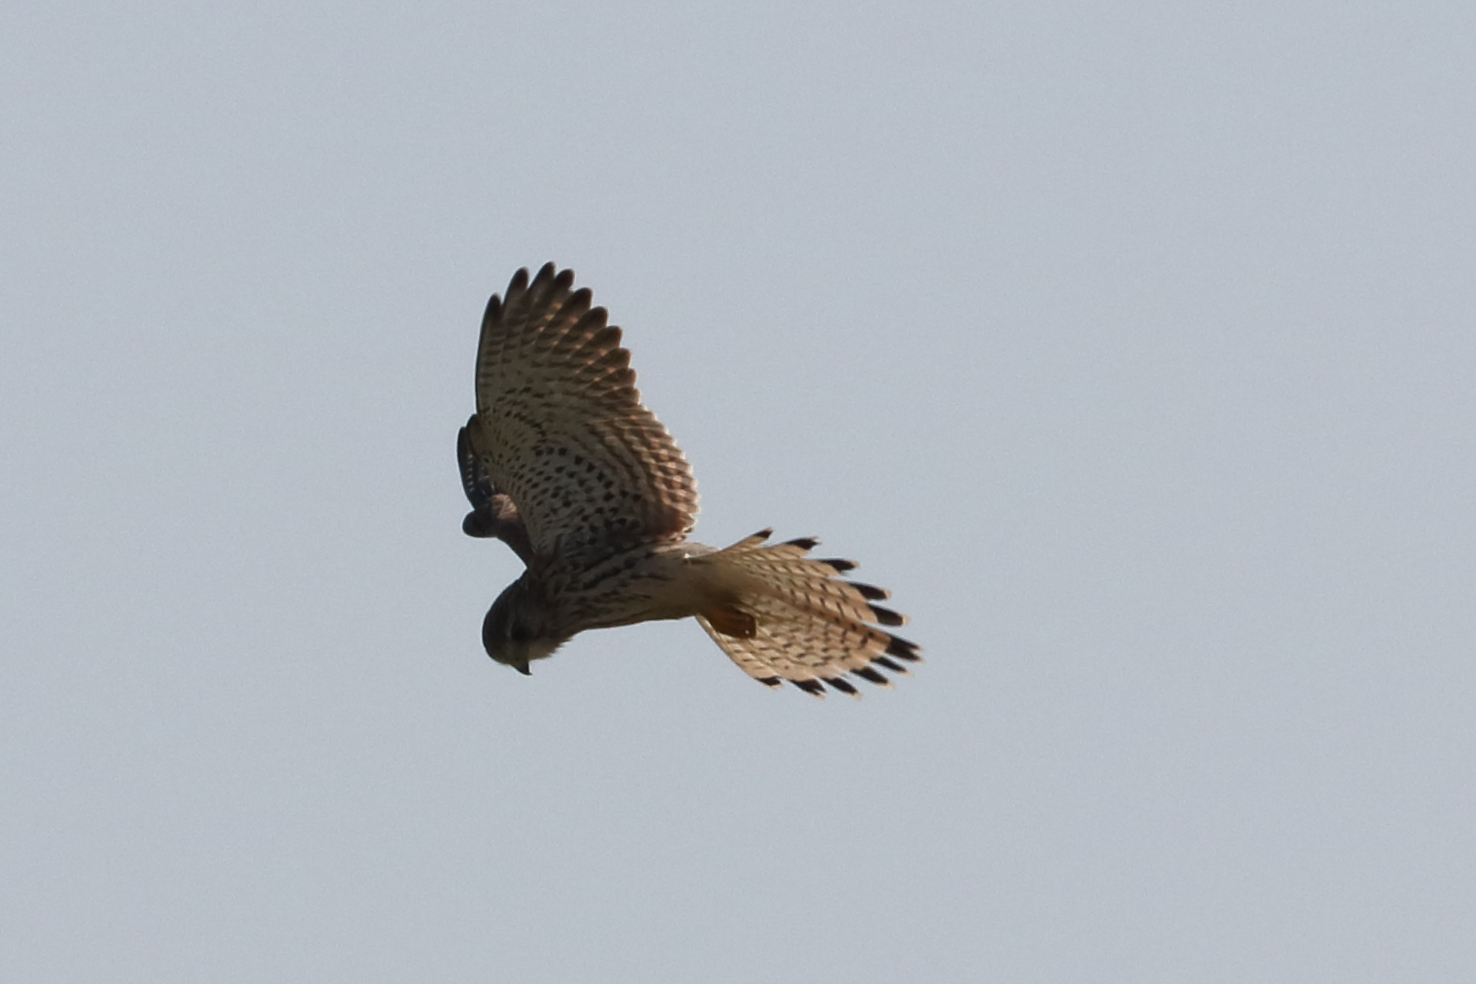 Kestrel at New Passage